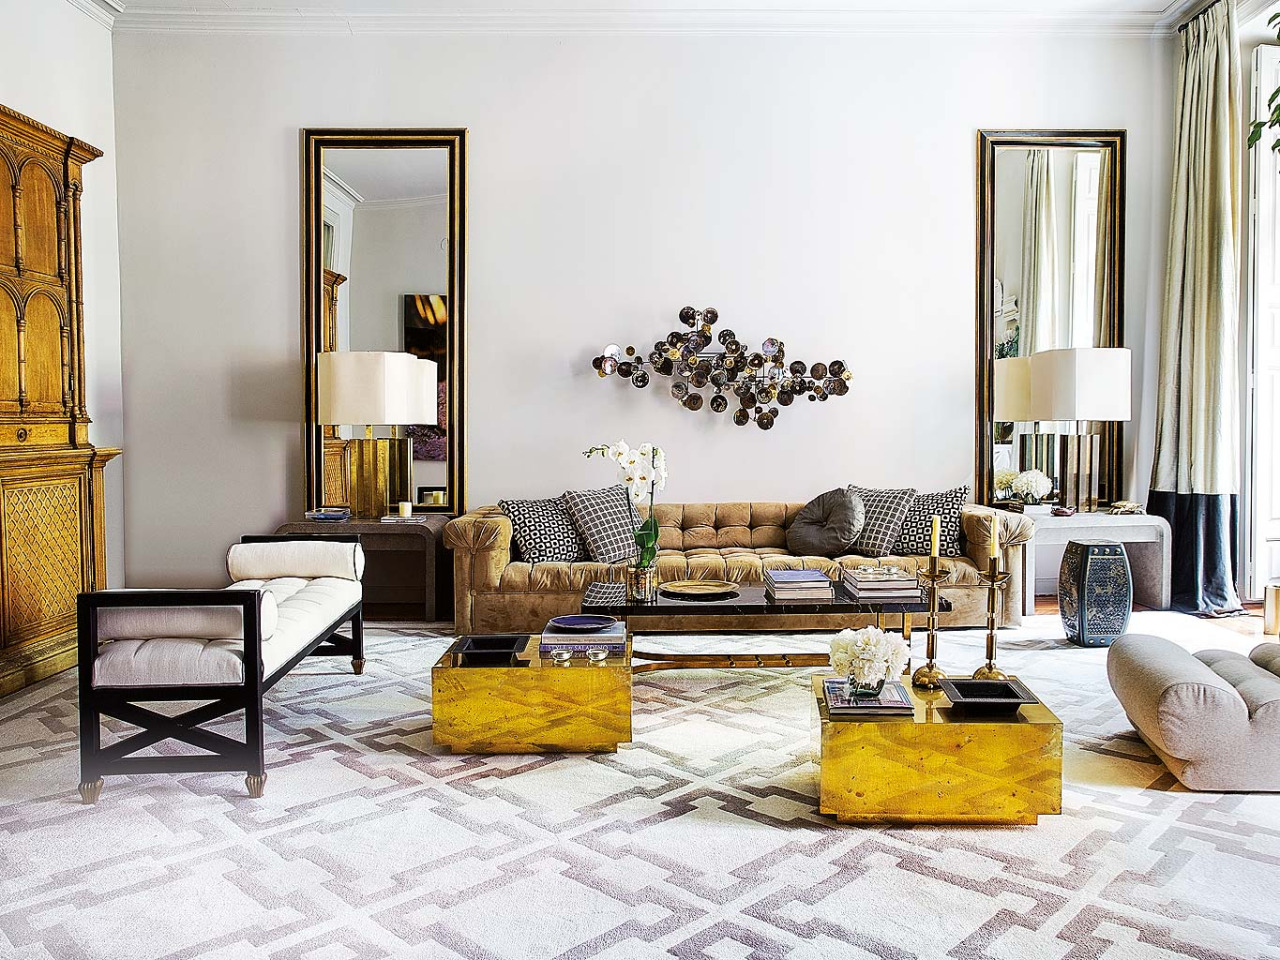 Living Room Inspiration: 10 Beautiful Designs and Why They Work ...